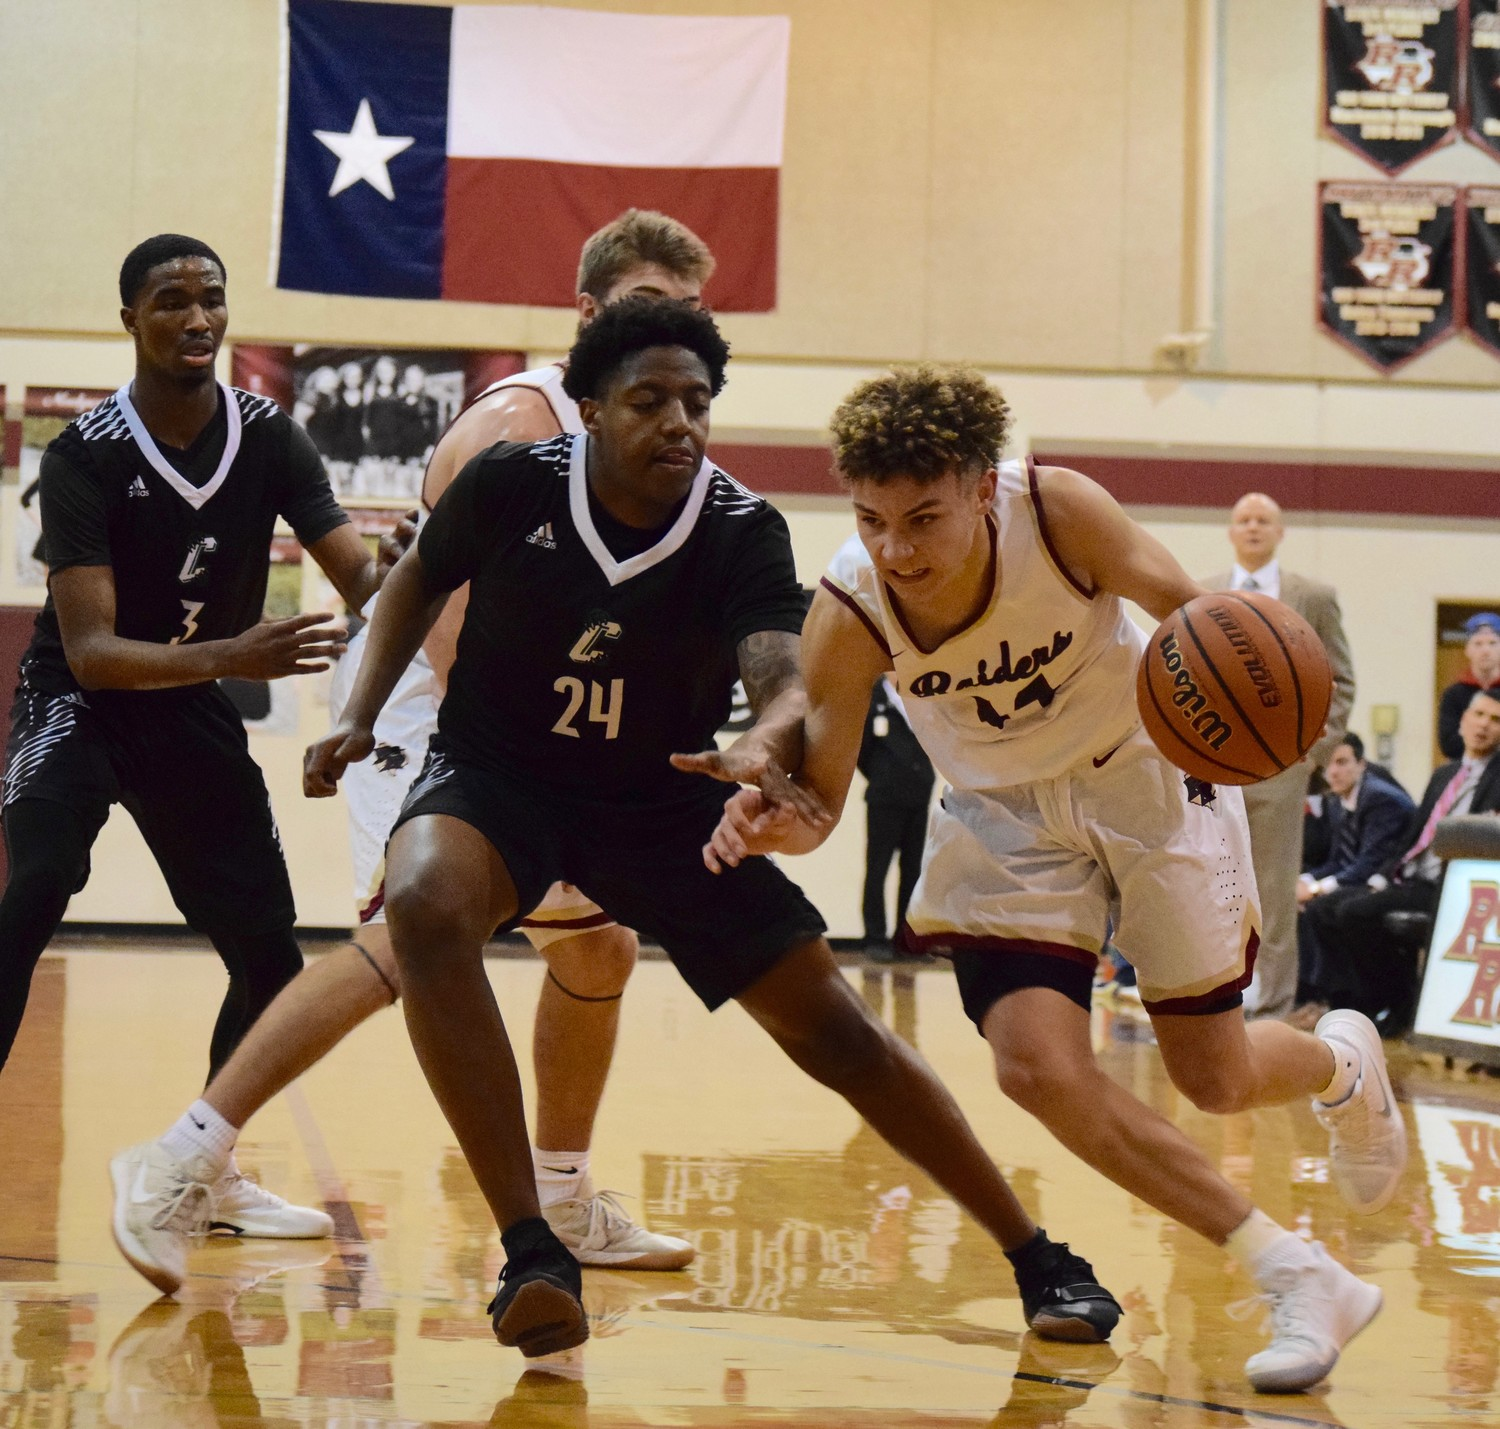 Keaton Brown scored 10 points but Rouse lost to Connally 71-60 at home on Friday night.